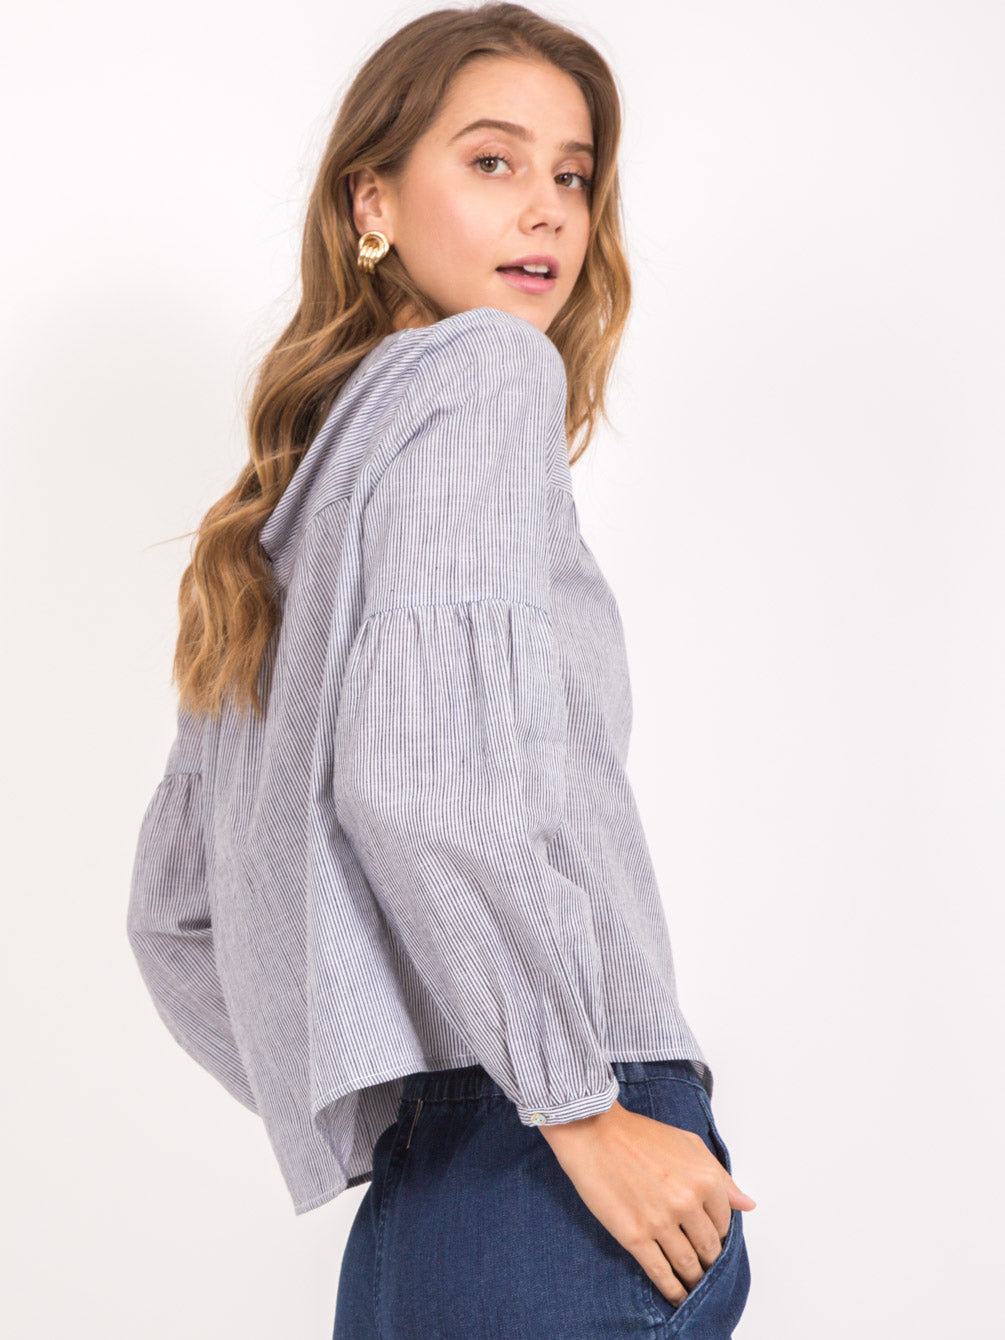 The Poppy Blouse